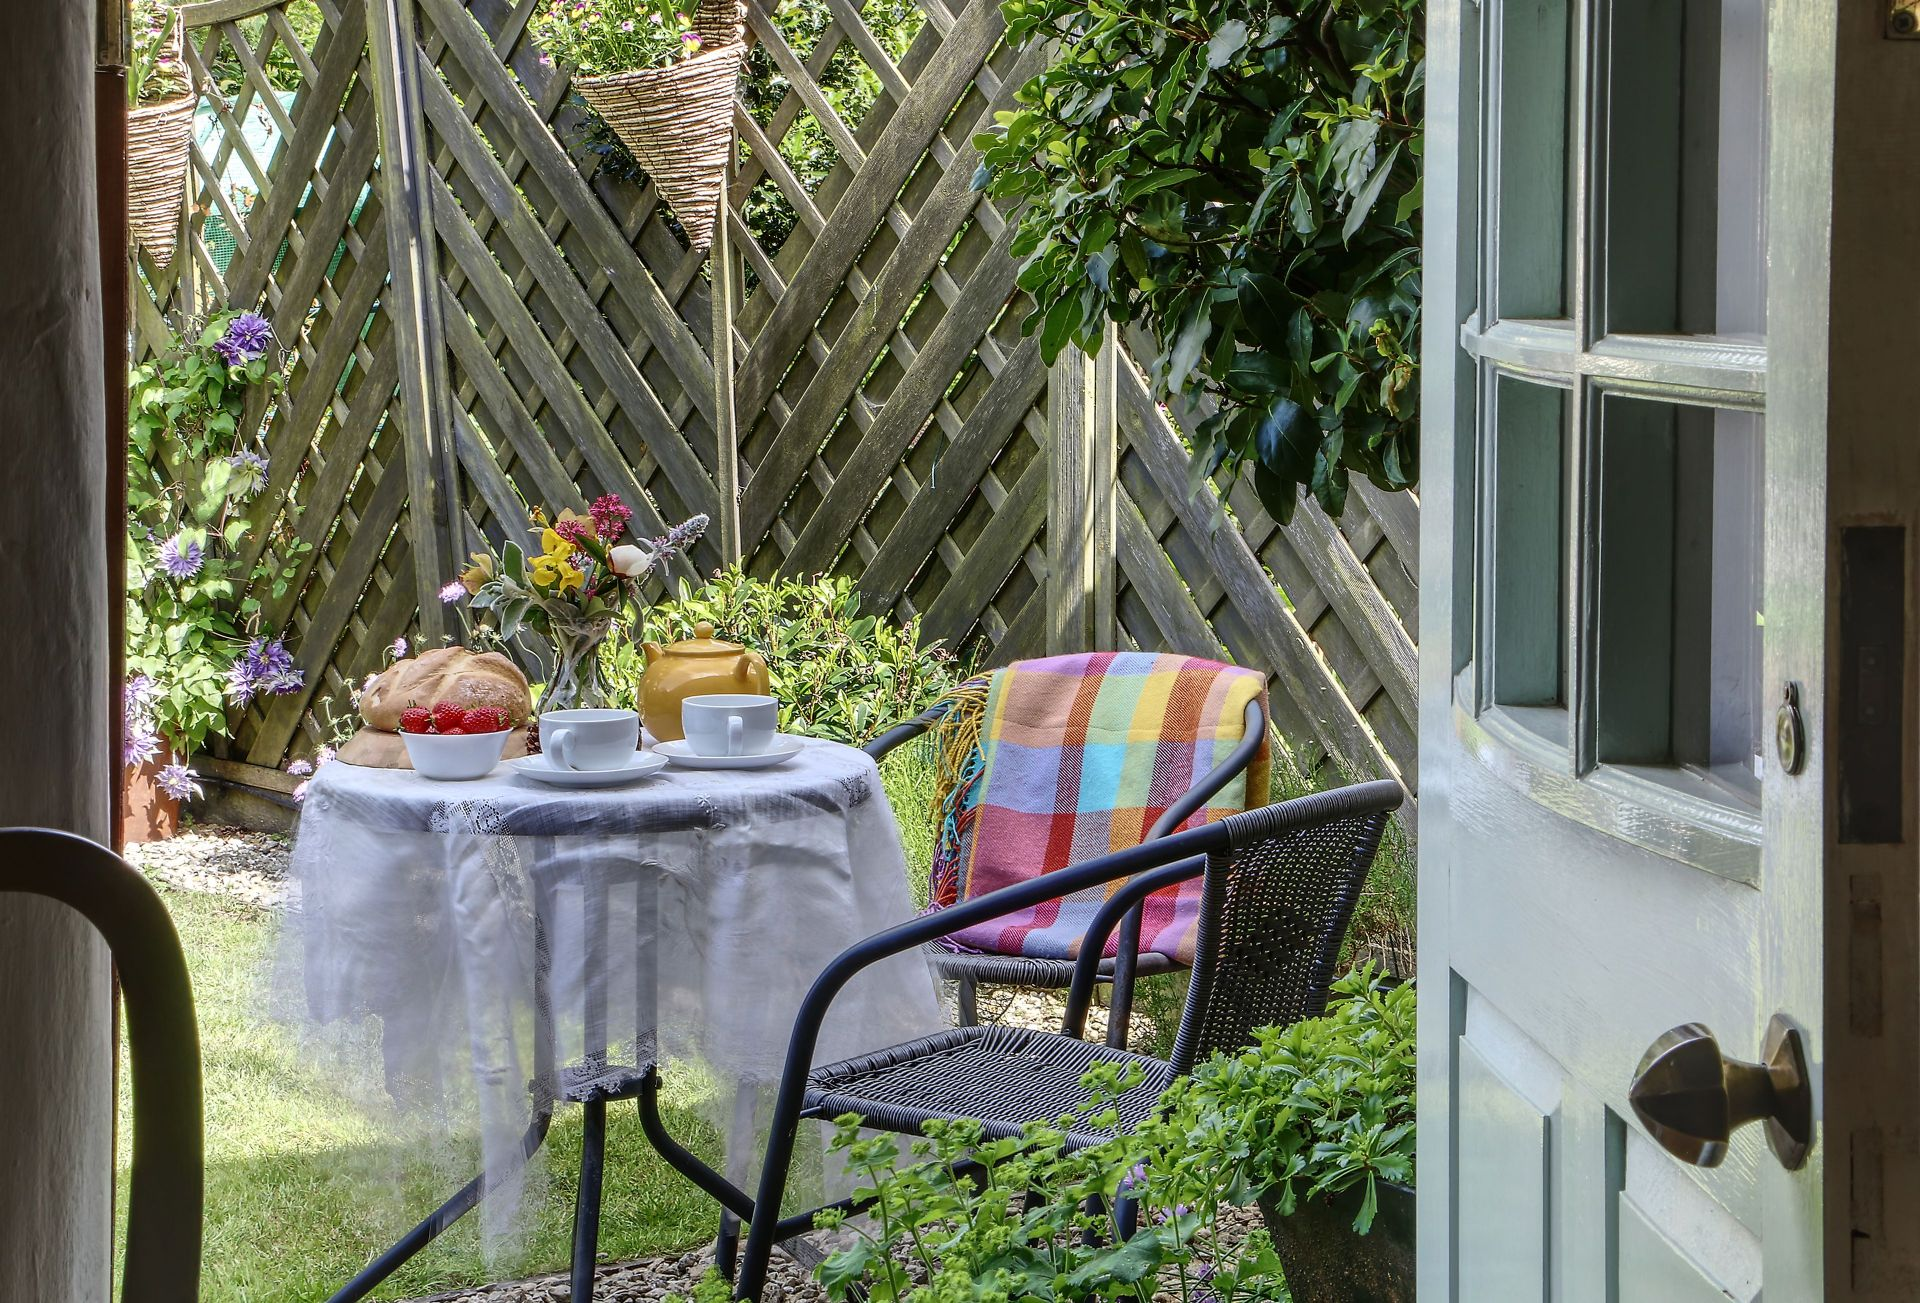 To the front of the cottage you'll find a country cottage garden and garden furniture